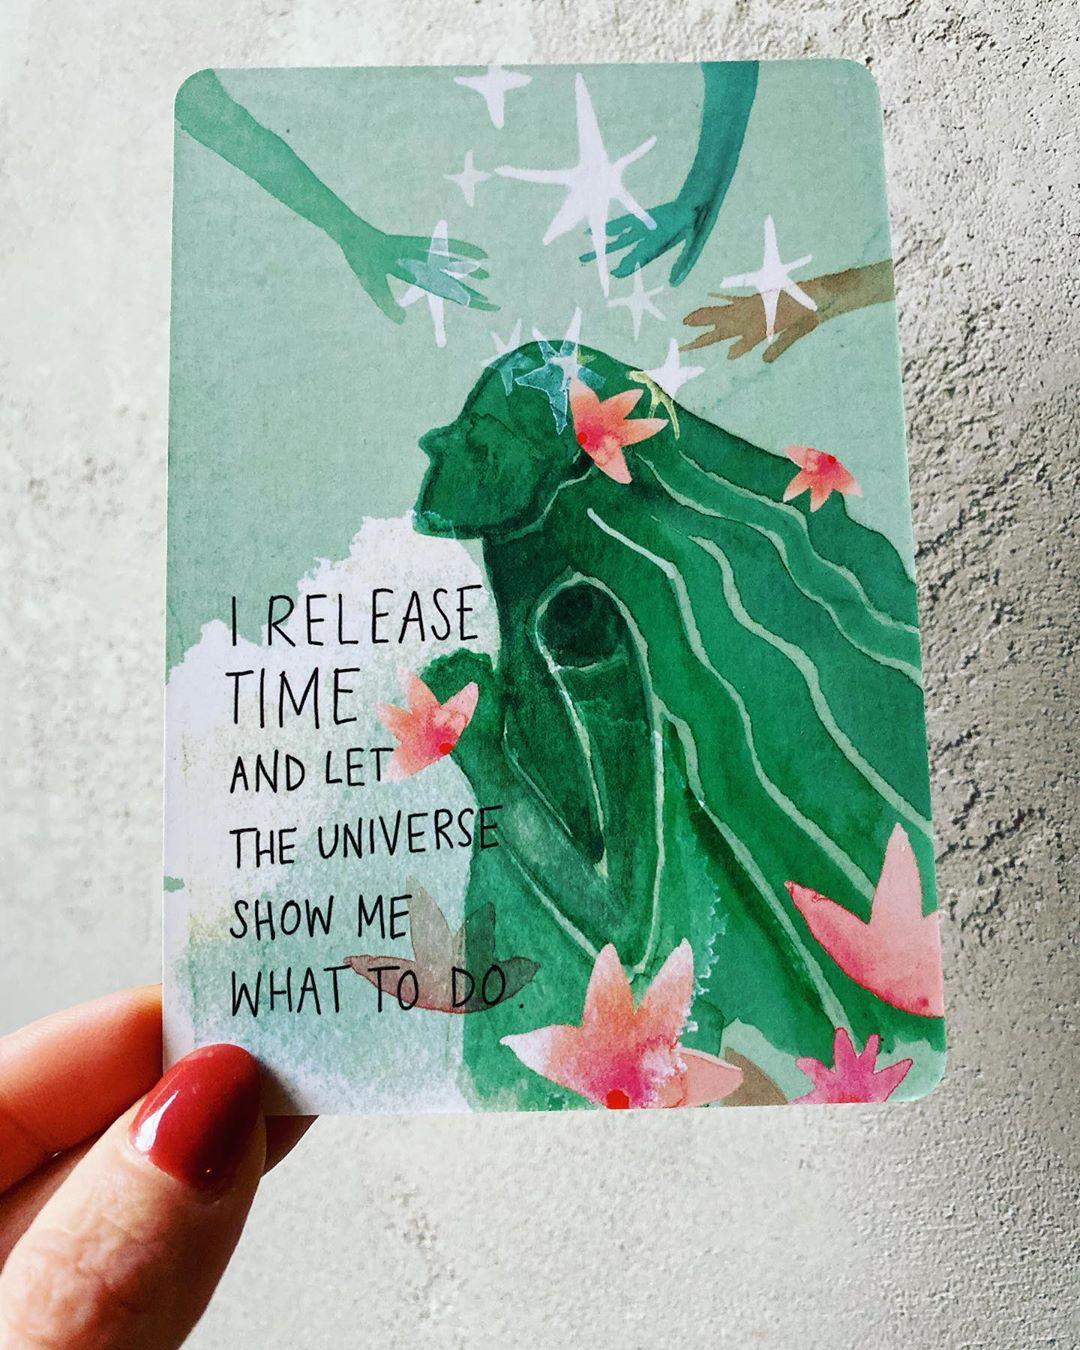 I release time and let the Universe show me what to do | Super Attractor card deck | Gabby Bernstein